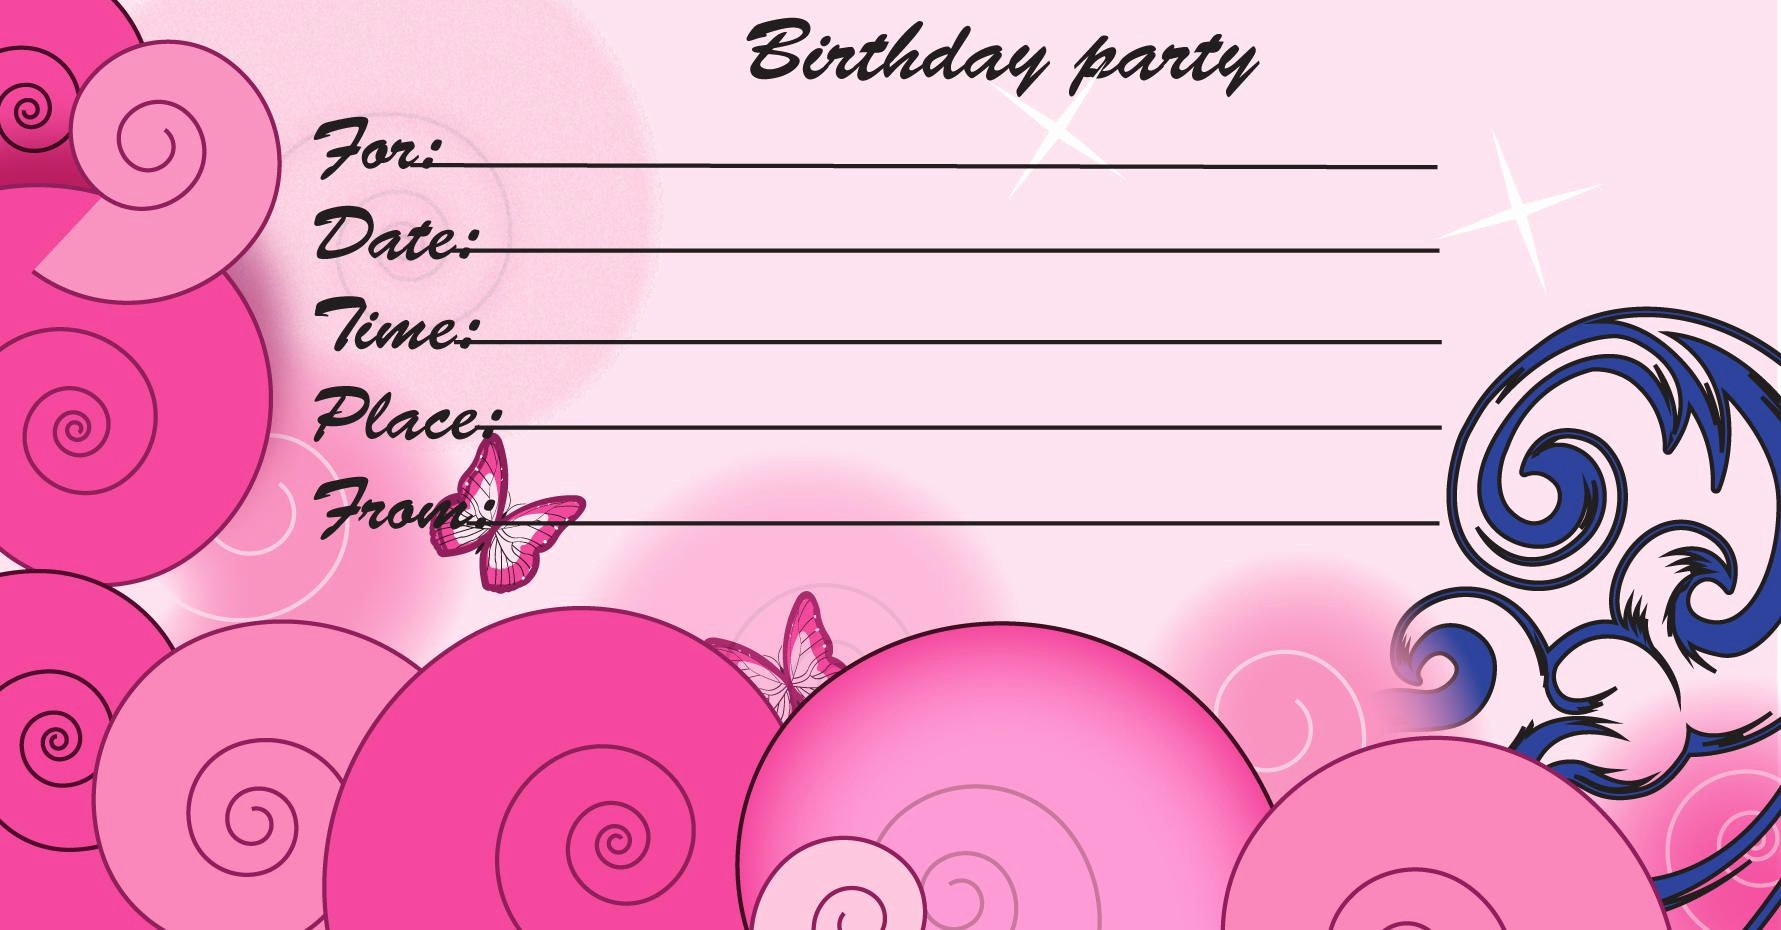 Birthday Party Invitation Card Template Fresh Birthday Invitations Kids Birthday Invite Template